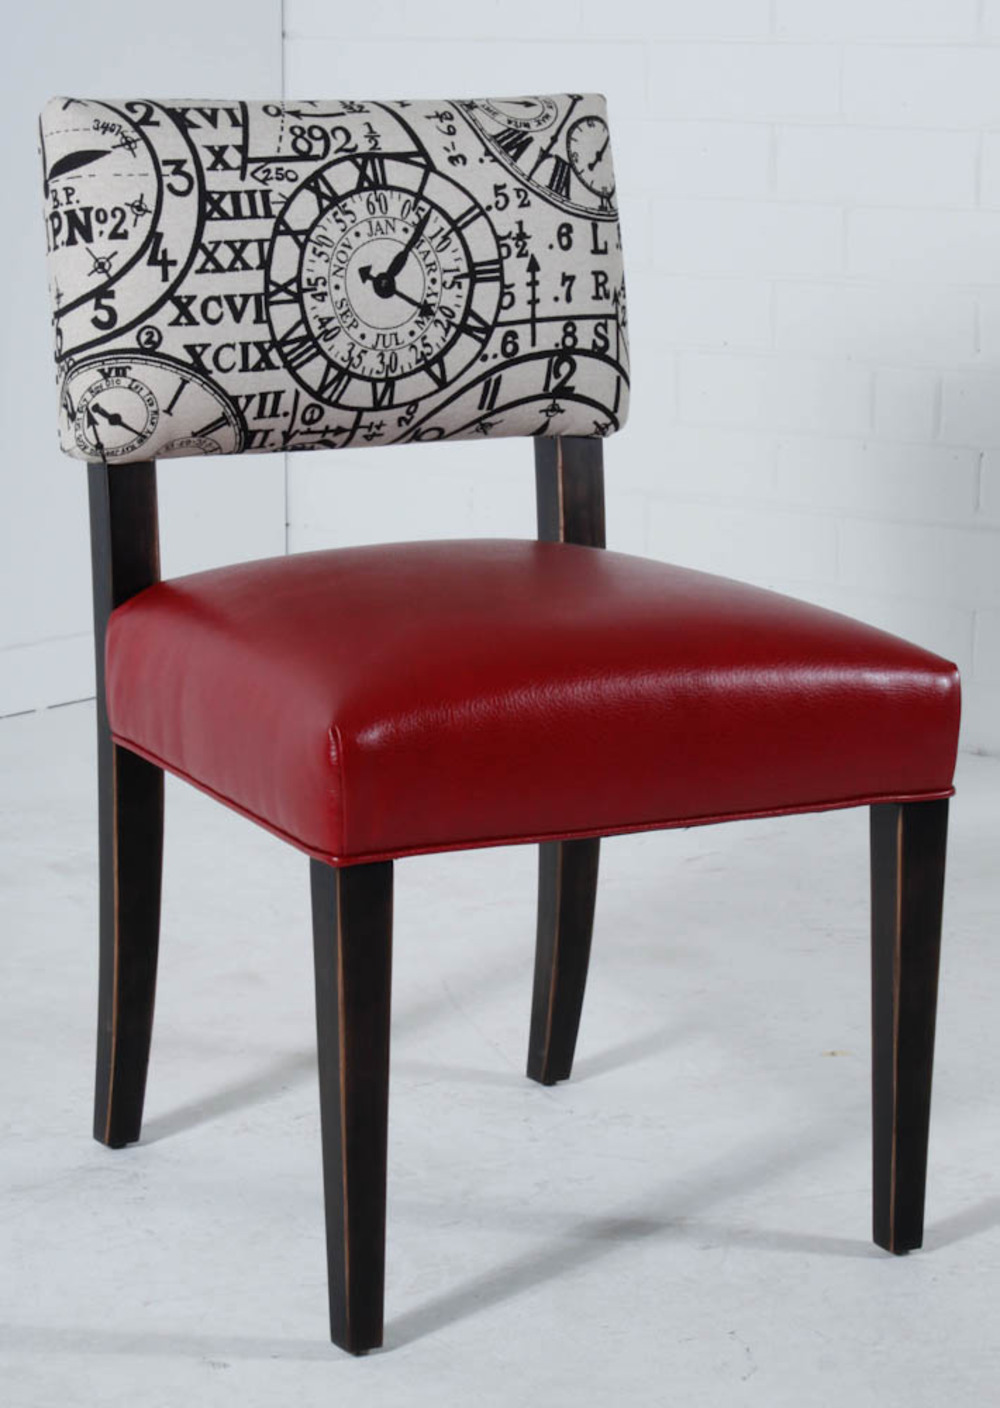 COX MANUFACTURING COMPANY, INC - Chair